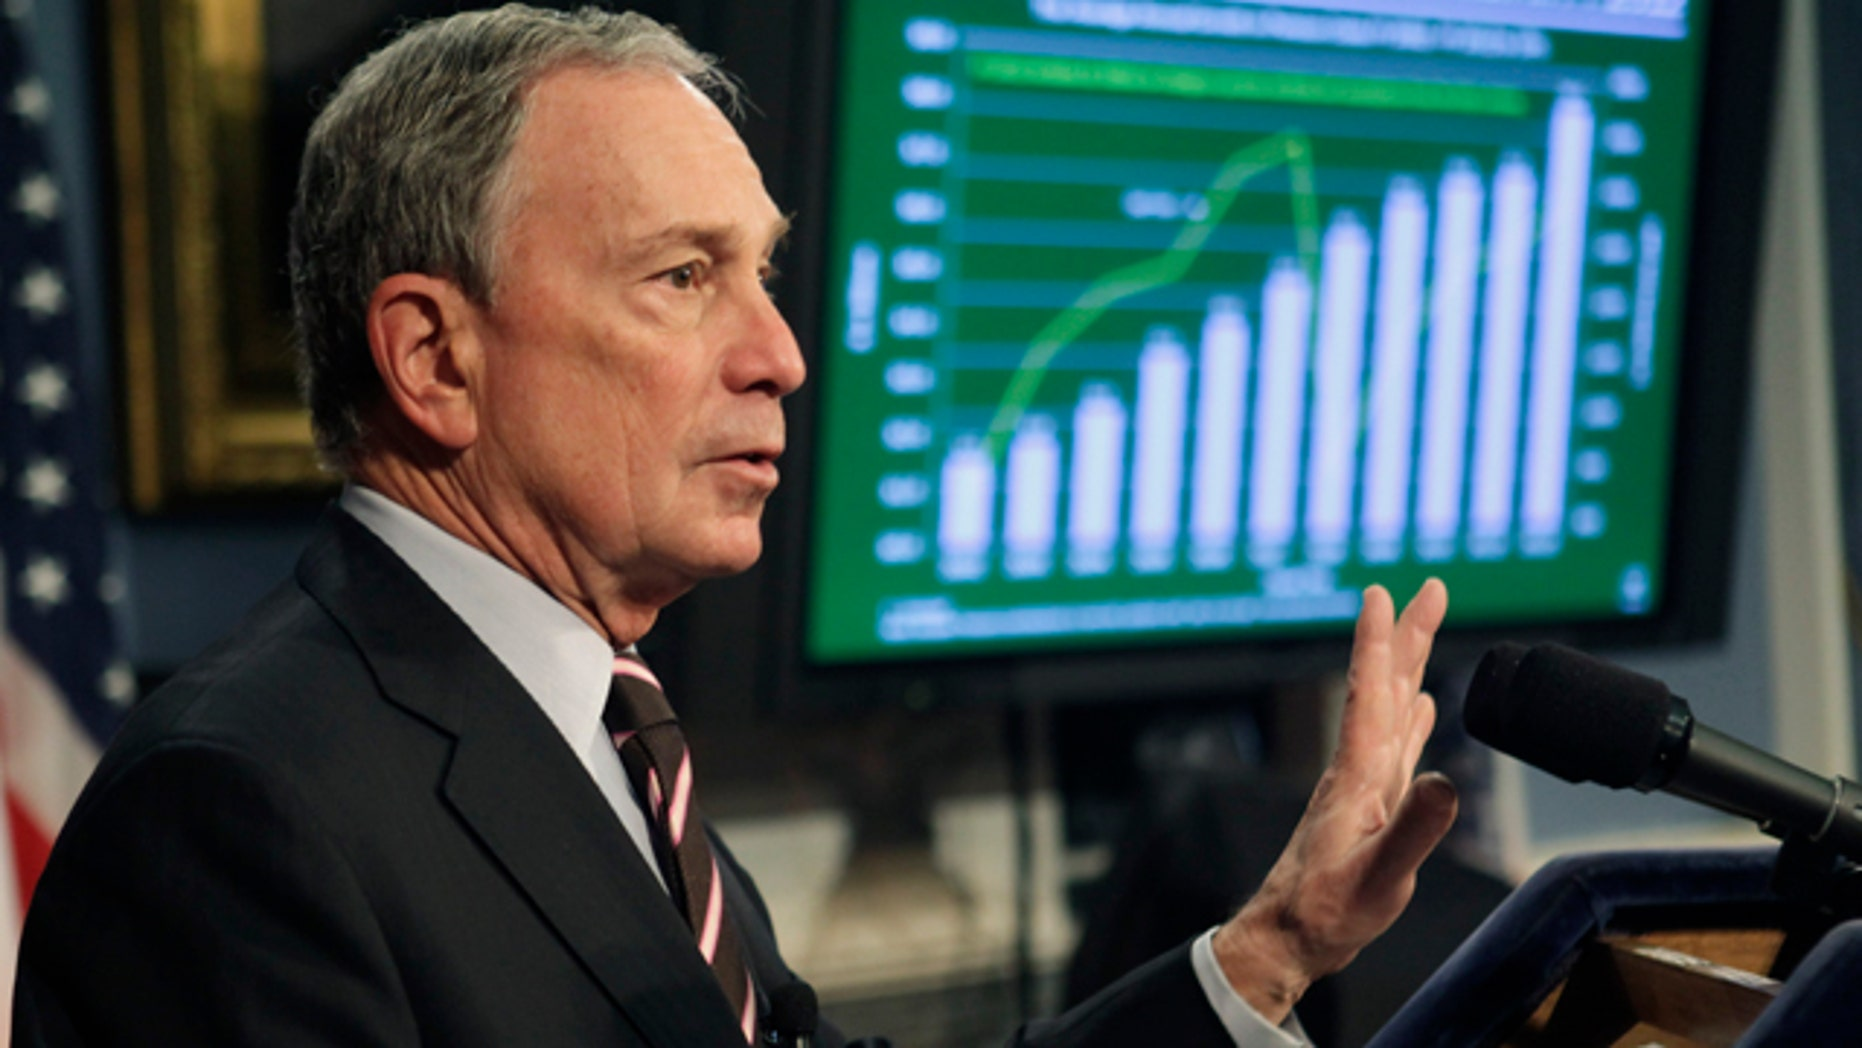 Feb. 17: New York City Mayor Michael Bloomberg delivers the fiscal year 2012 budget at City Hall in New York.